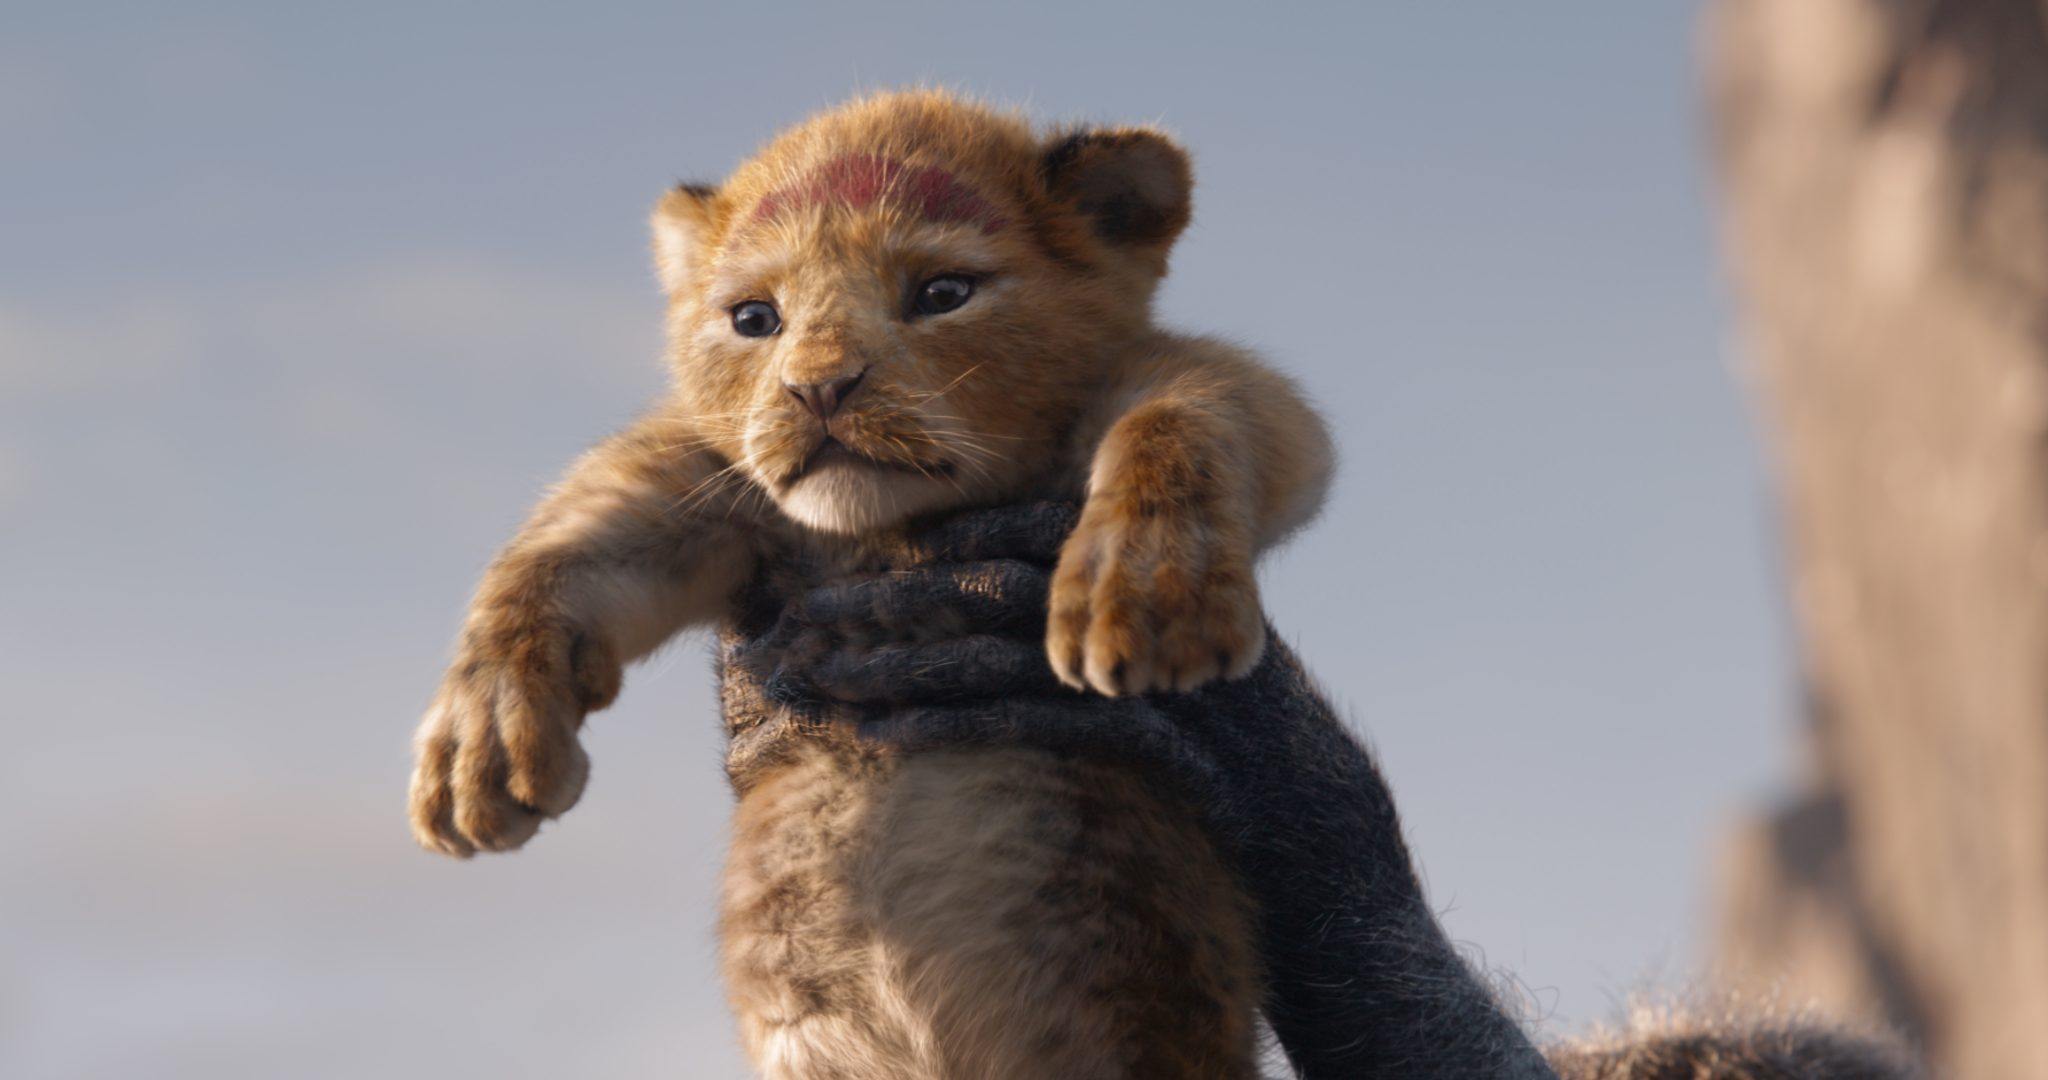 The Lion King. © 2019 Walt Disney Studios. All rights reserved. VFX by MPC Film